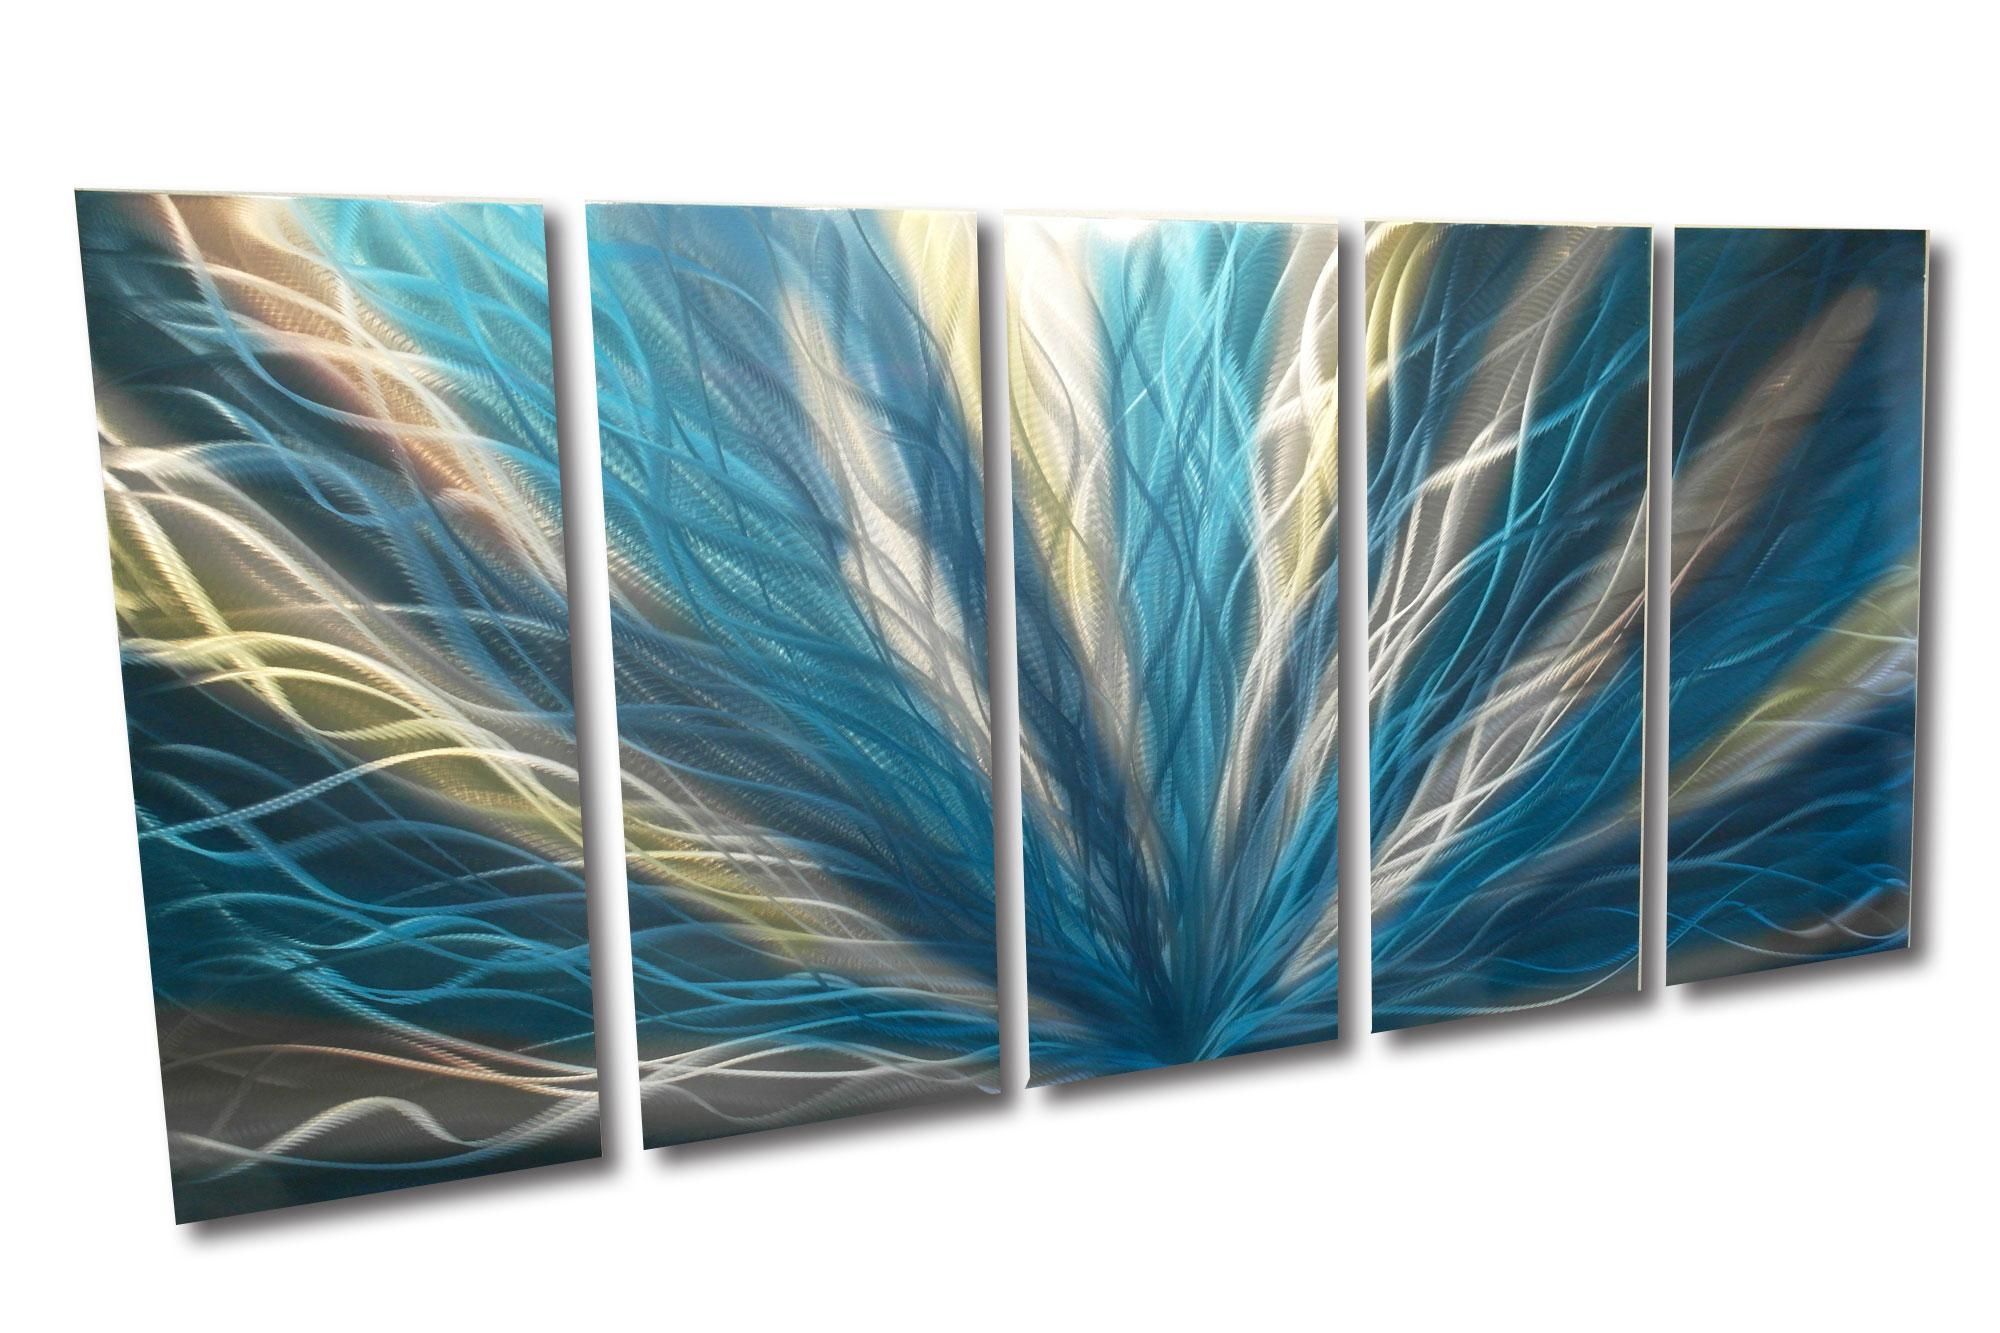 Radiance Teal 36X79 – Metal Wall Art Abstract Sculpture Modern With Teal Metal Wall Art (View 5 of 20)